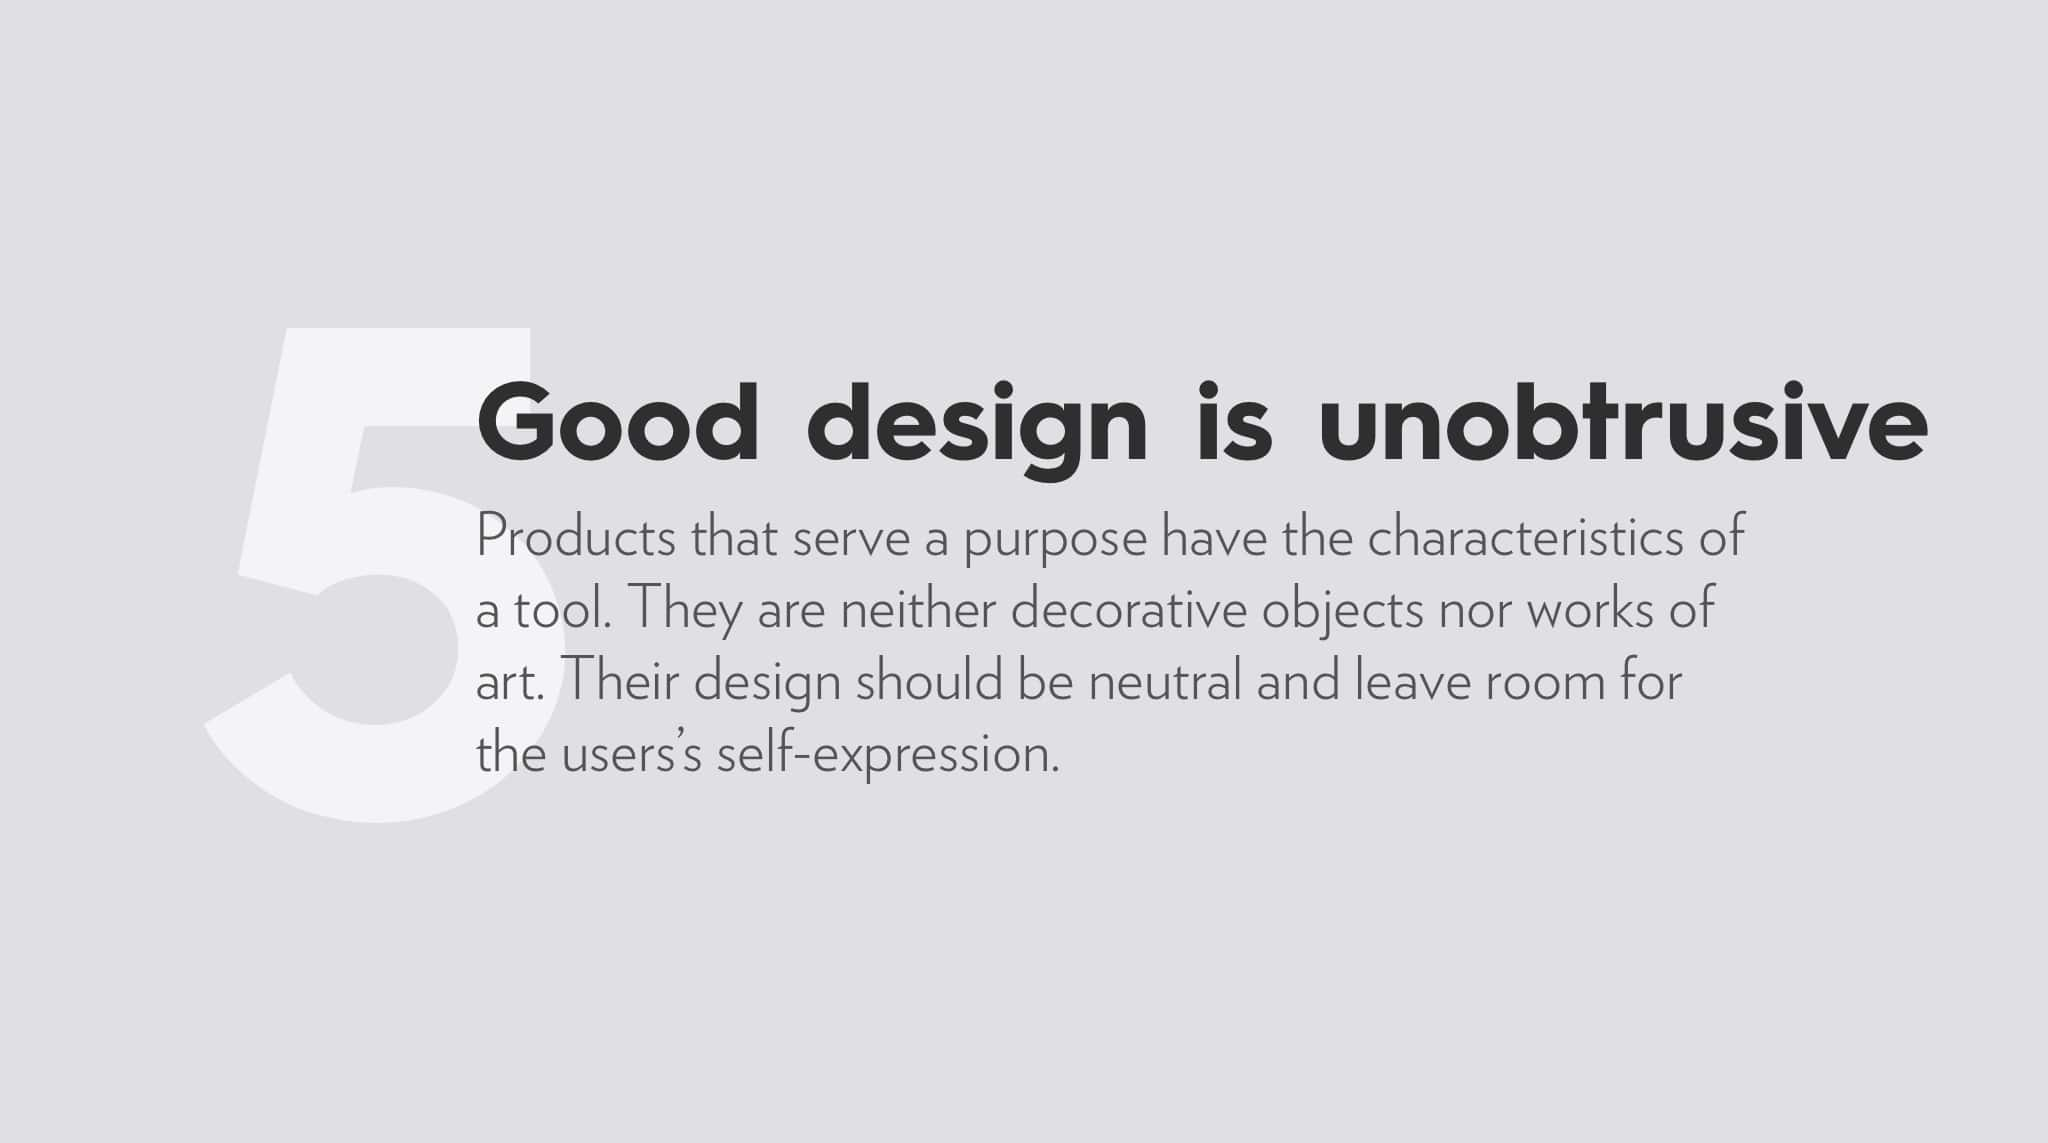 Ten Principles For Good Design by Dieter Rams, good design is unobtrusive.